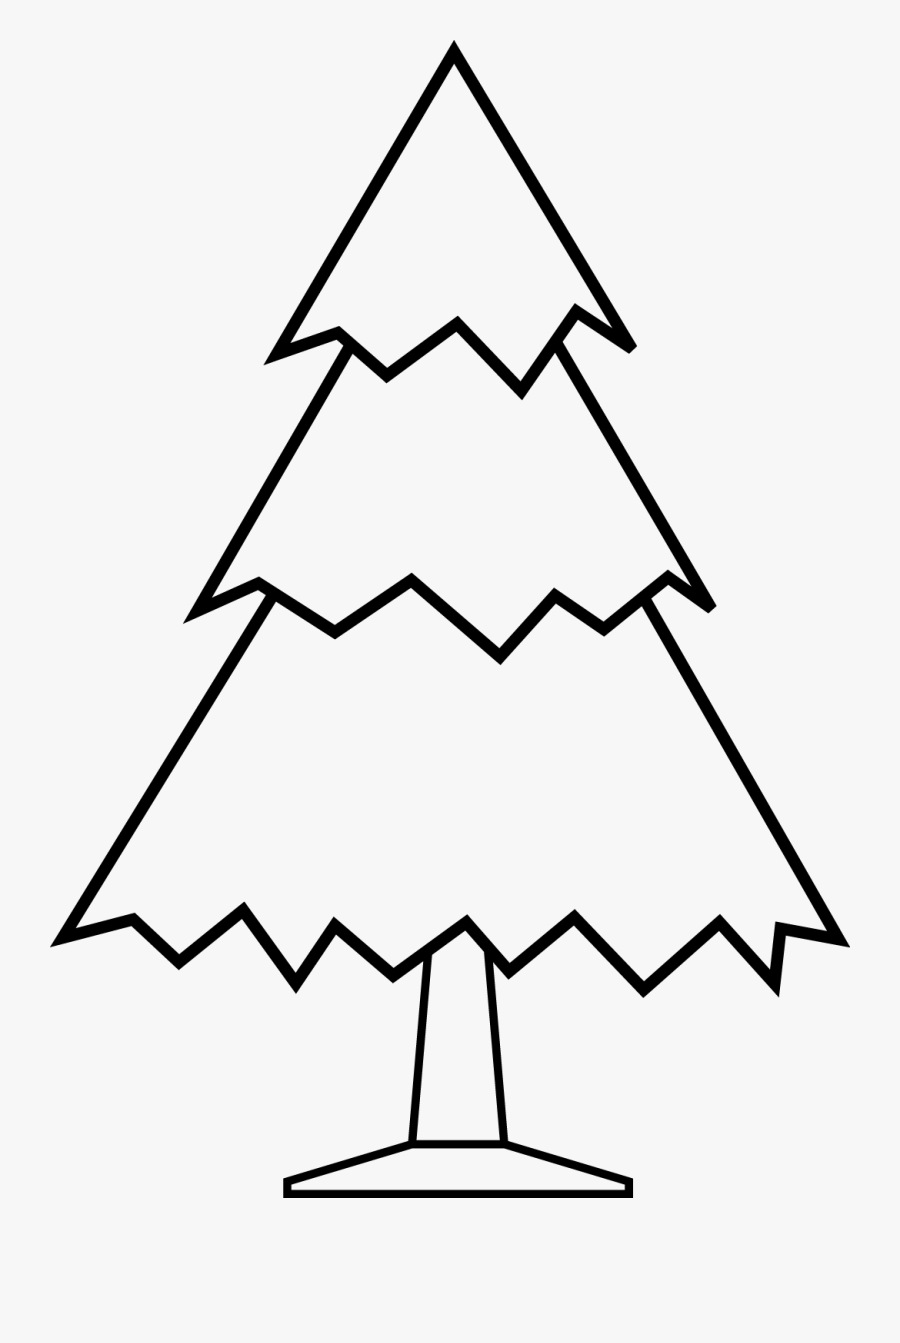 Christmas Tree Drawing Designs, Transparent Clipart